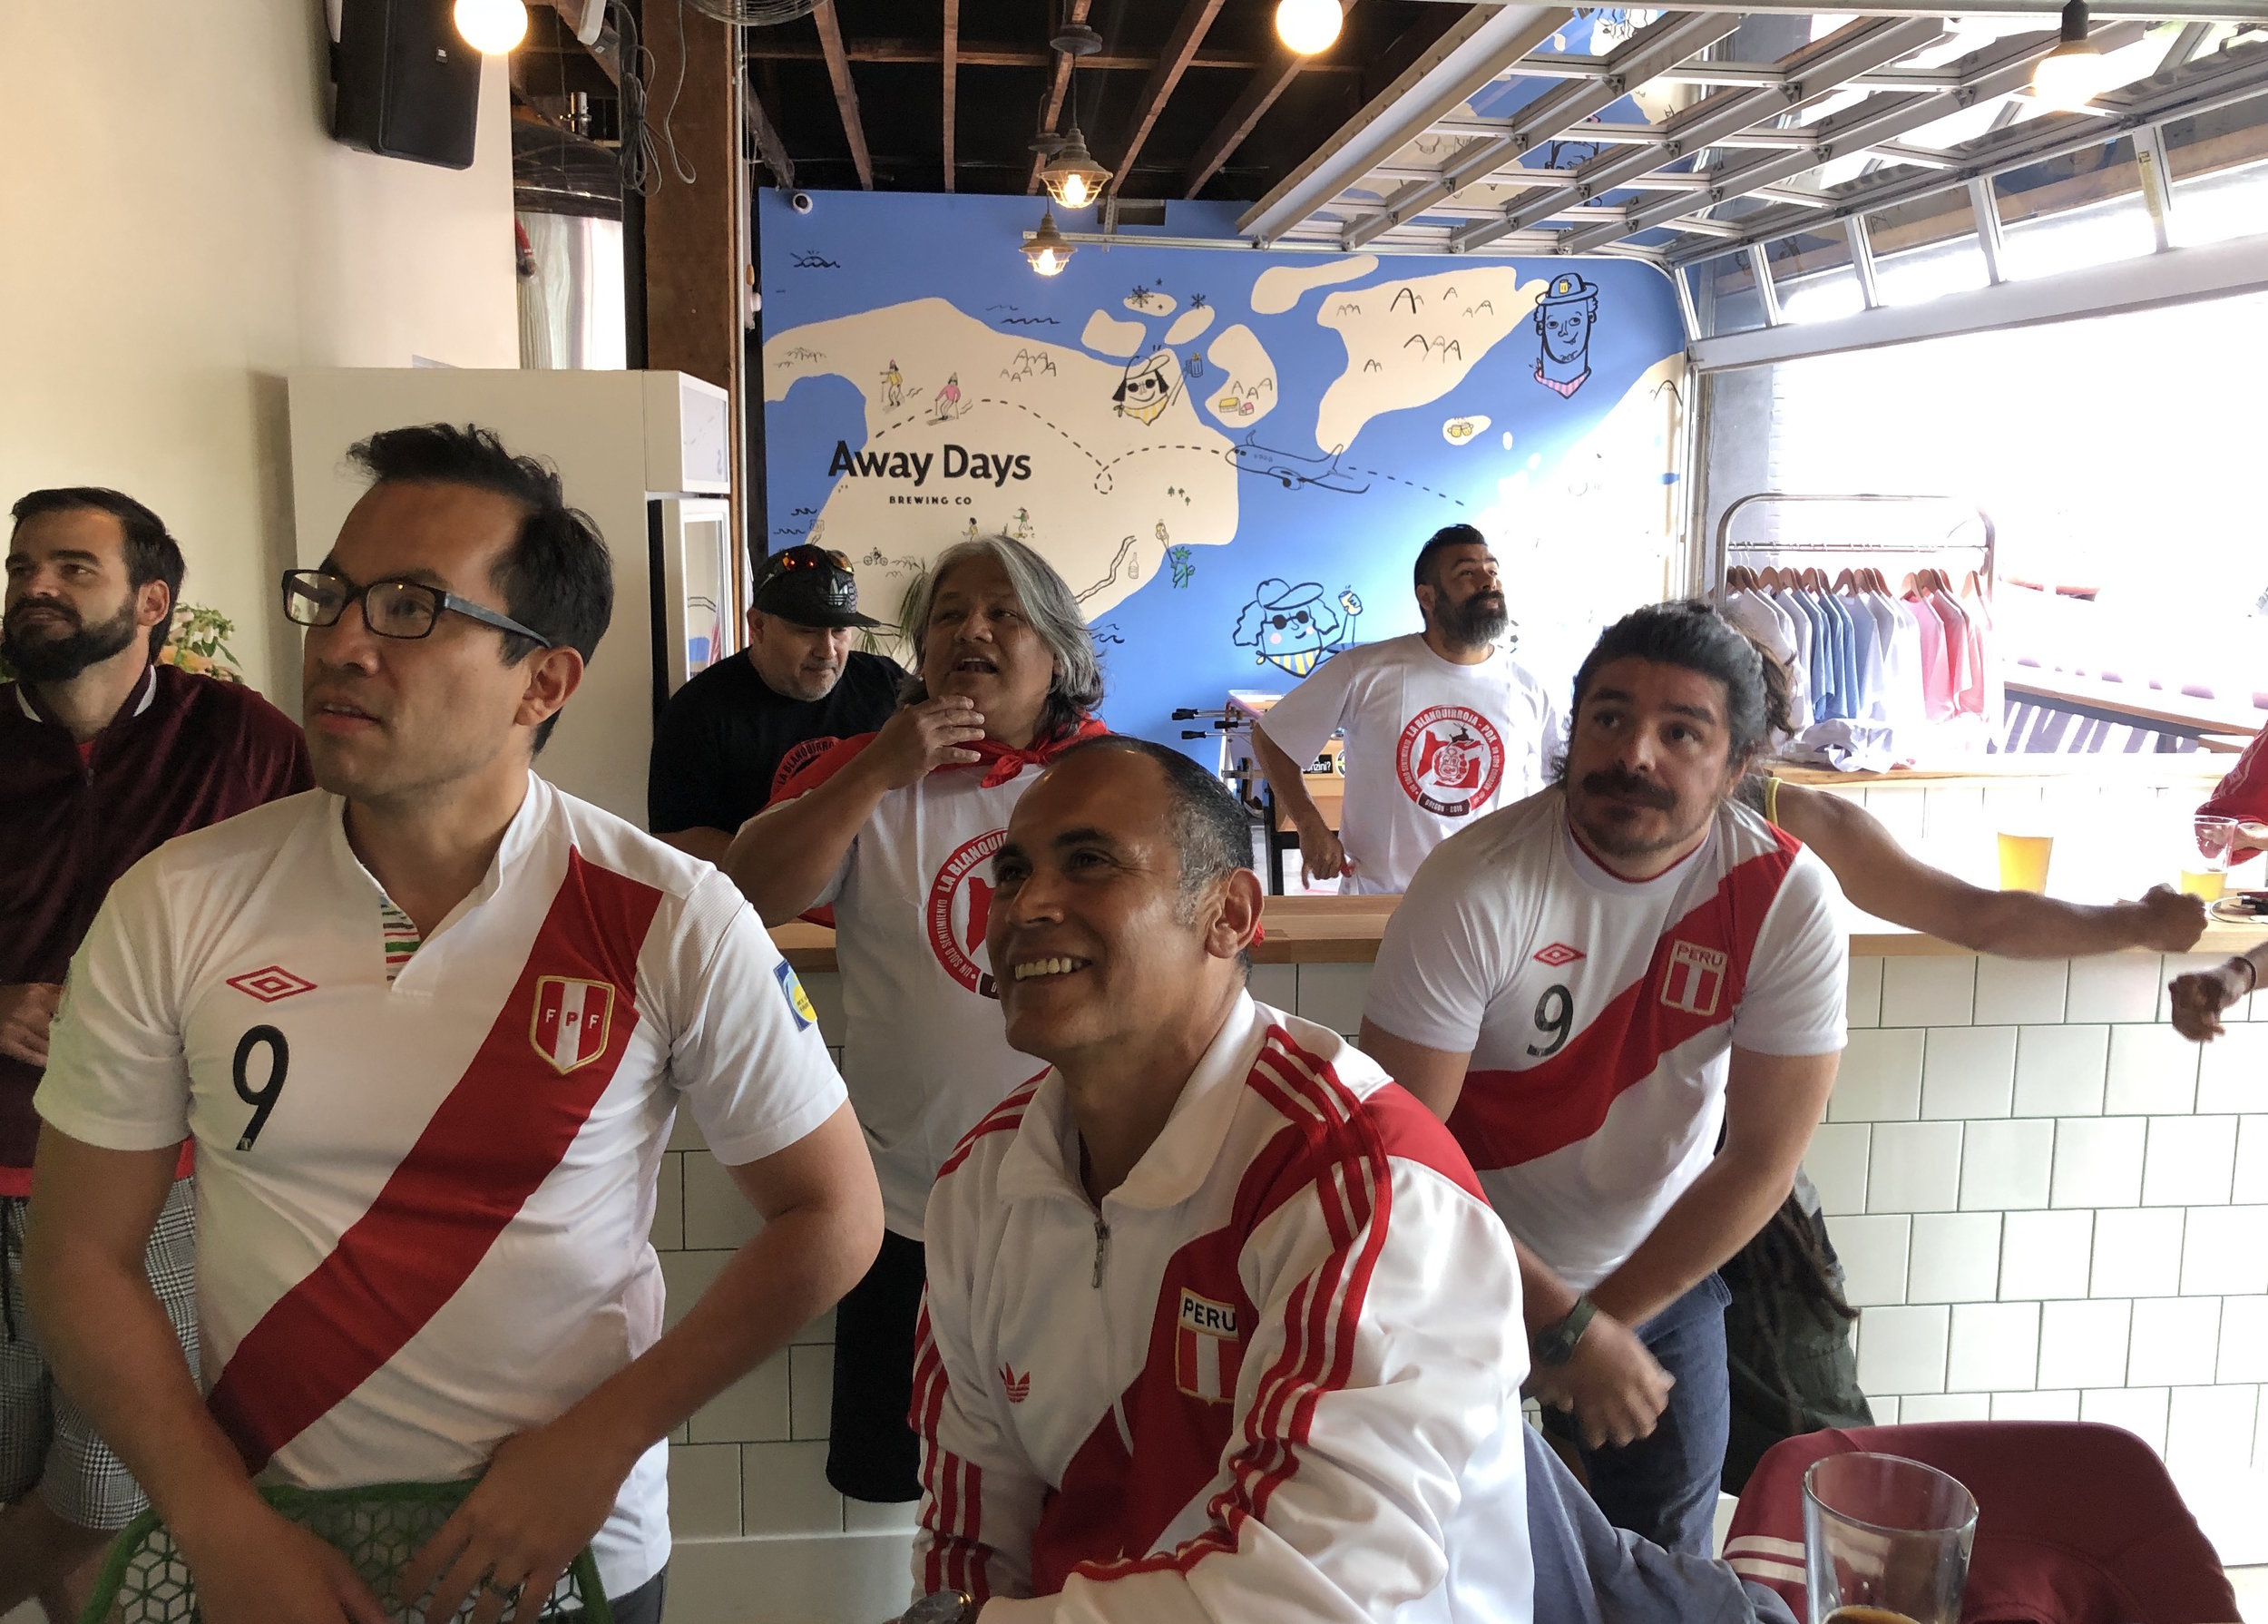 Join la blanquirroja supporters group to cheer on Peru!